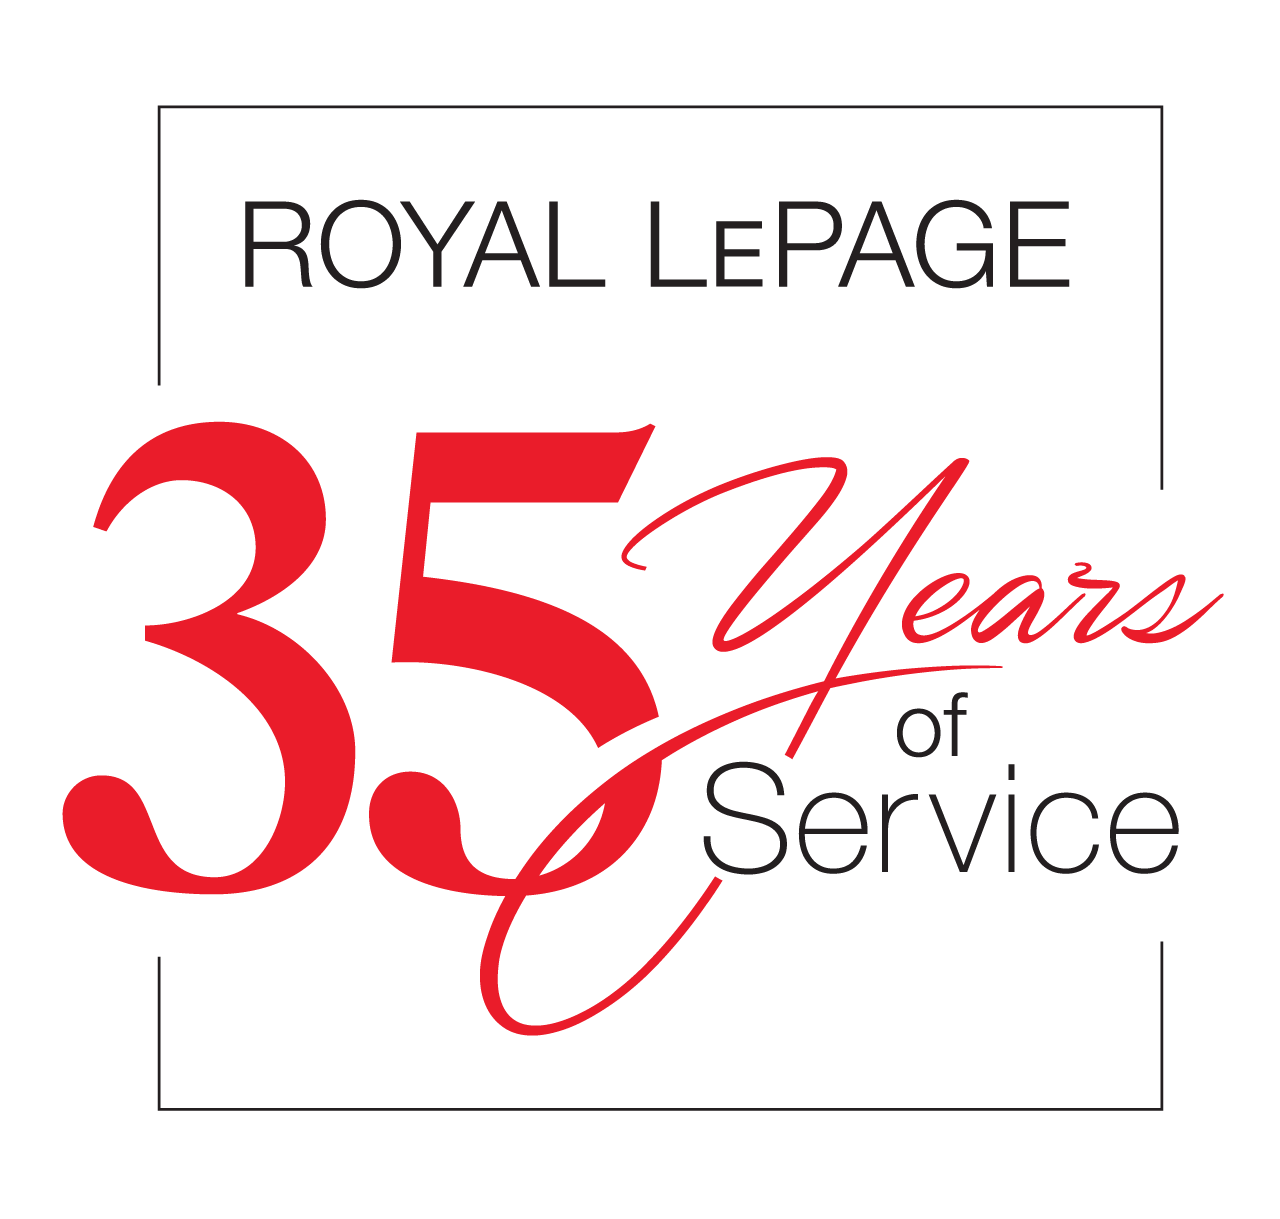 Years of Service - 35 Years